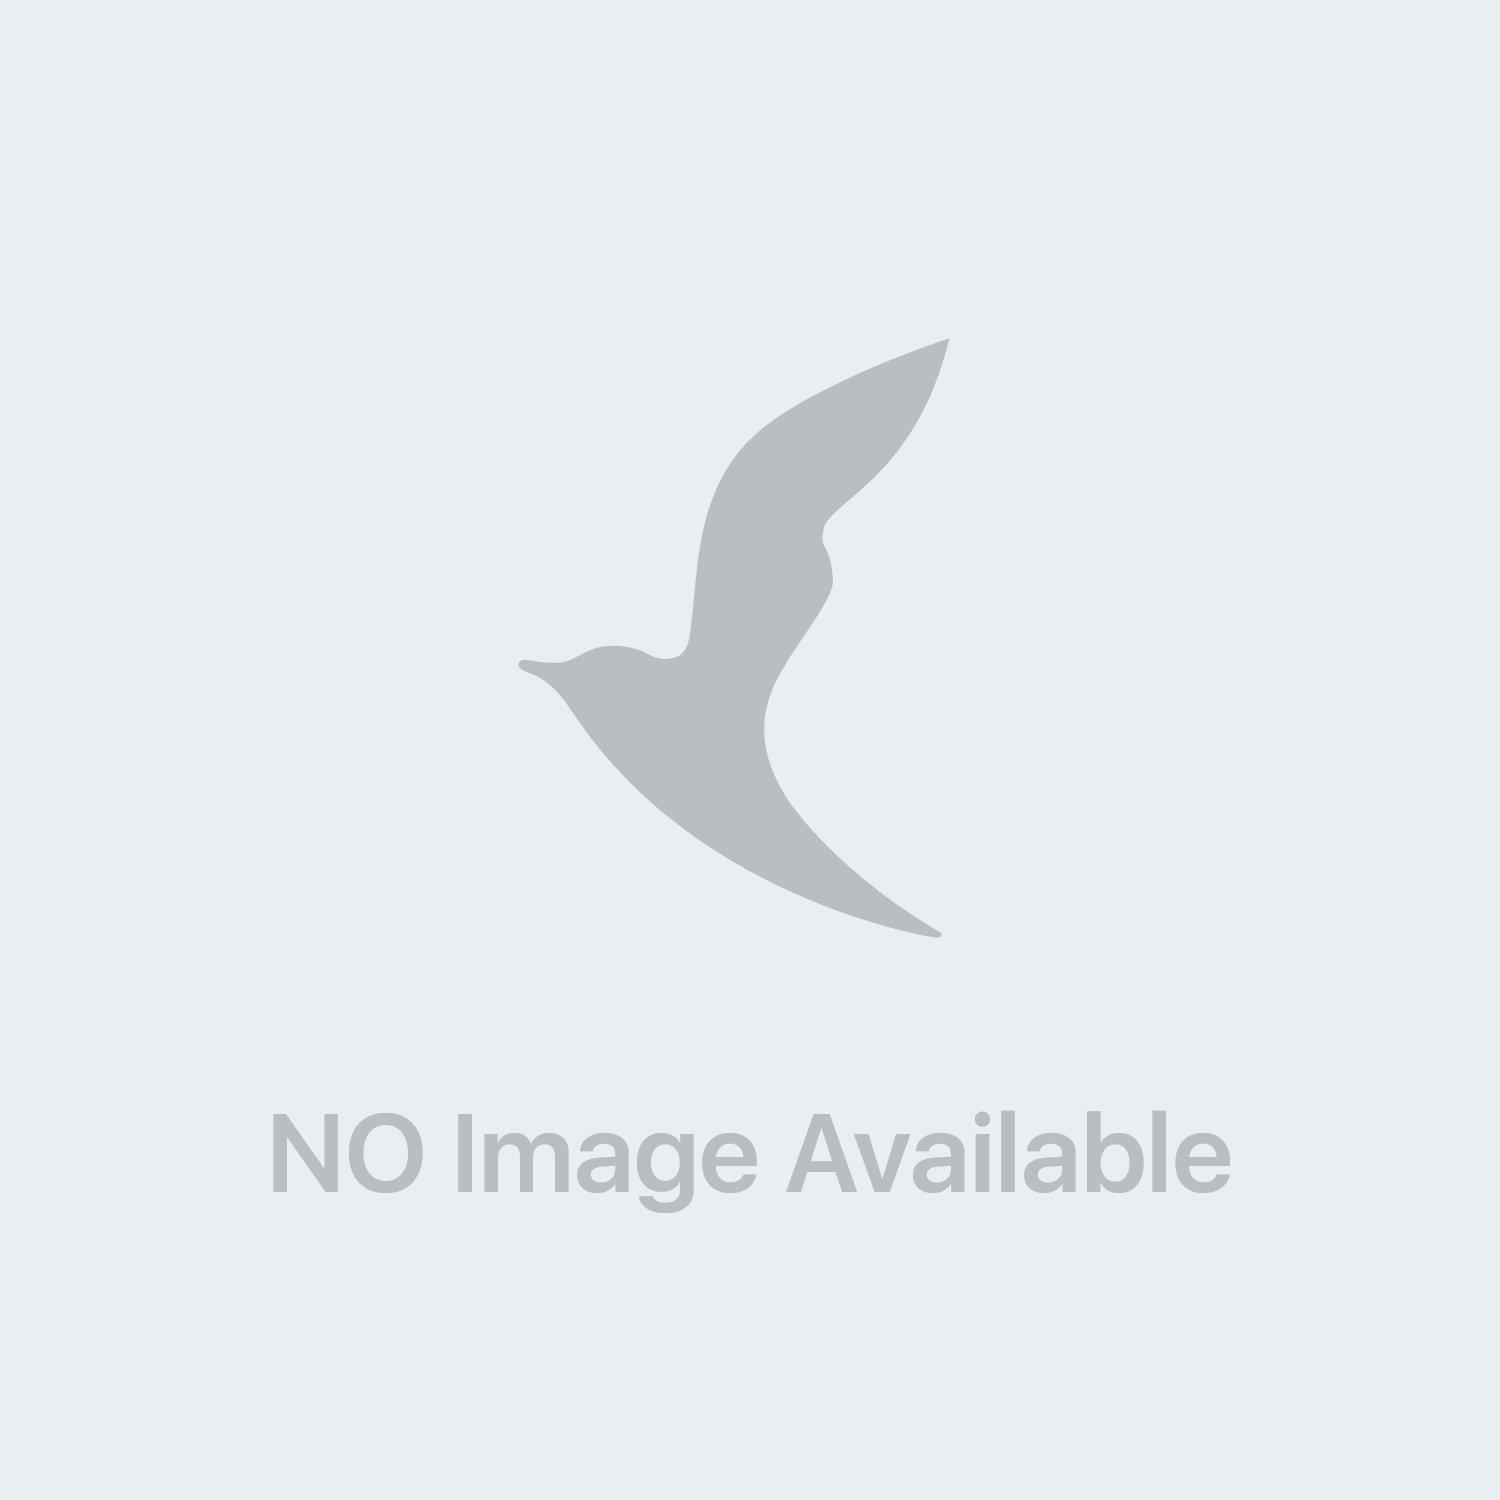 Optima Deo Naturals Deodorante all'Aloe Vera 50 g